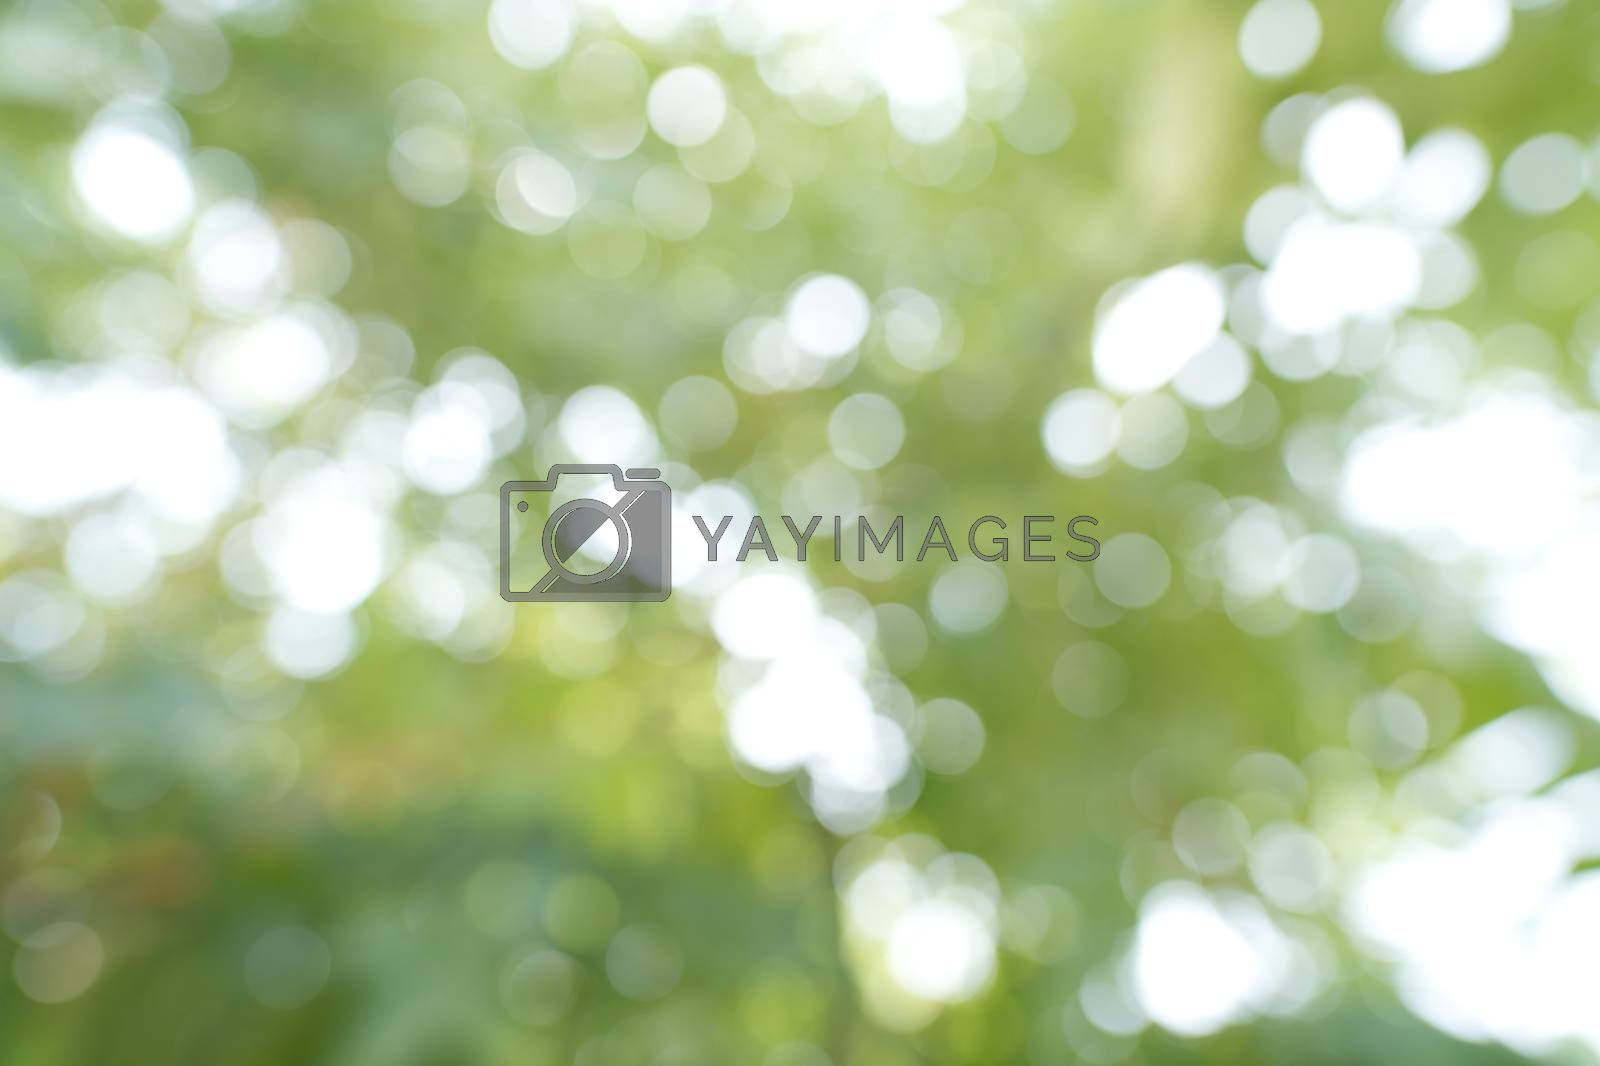 Abstract, the green bokeh background from a tree in a forest garden represents a fresh, bright